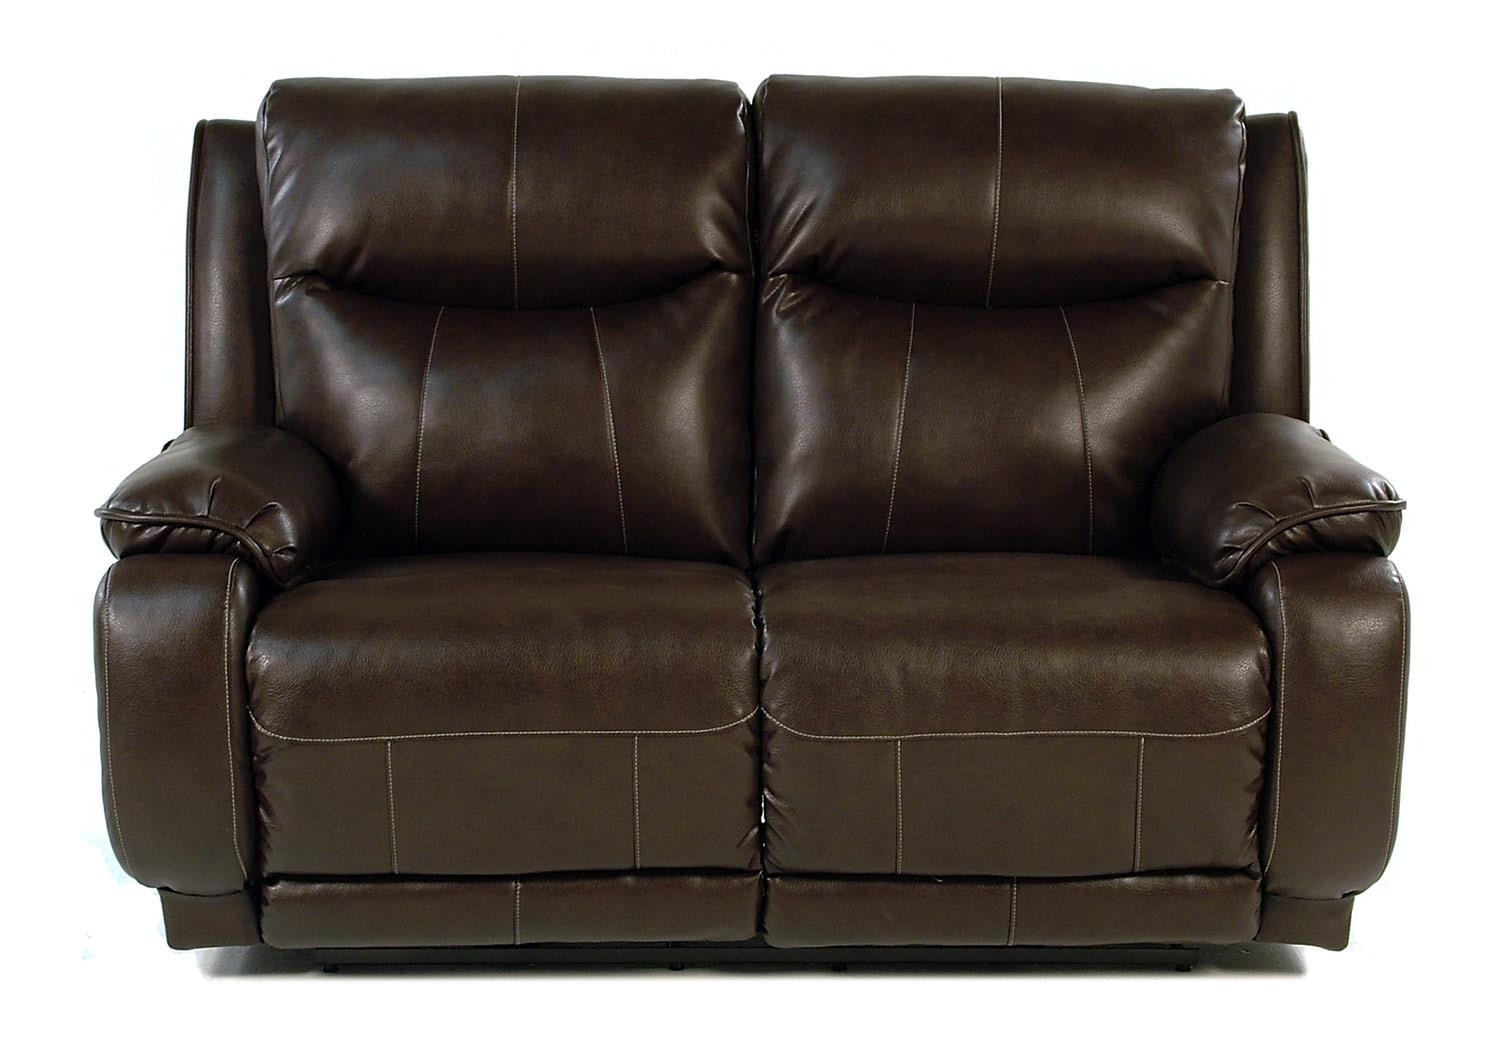 Design to Recline Power-Max Power Reclining Loveseat w/ Power Headrest - Item Number: 875-51P